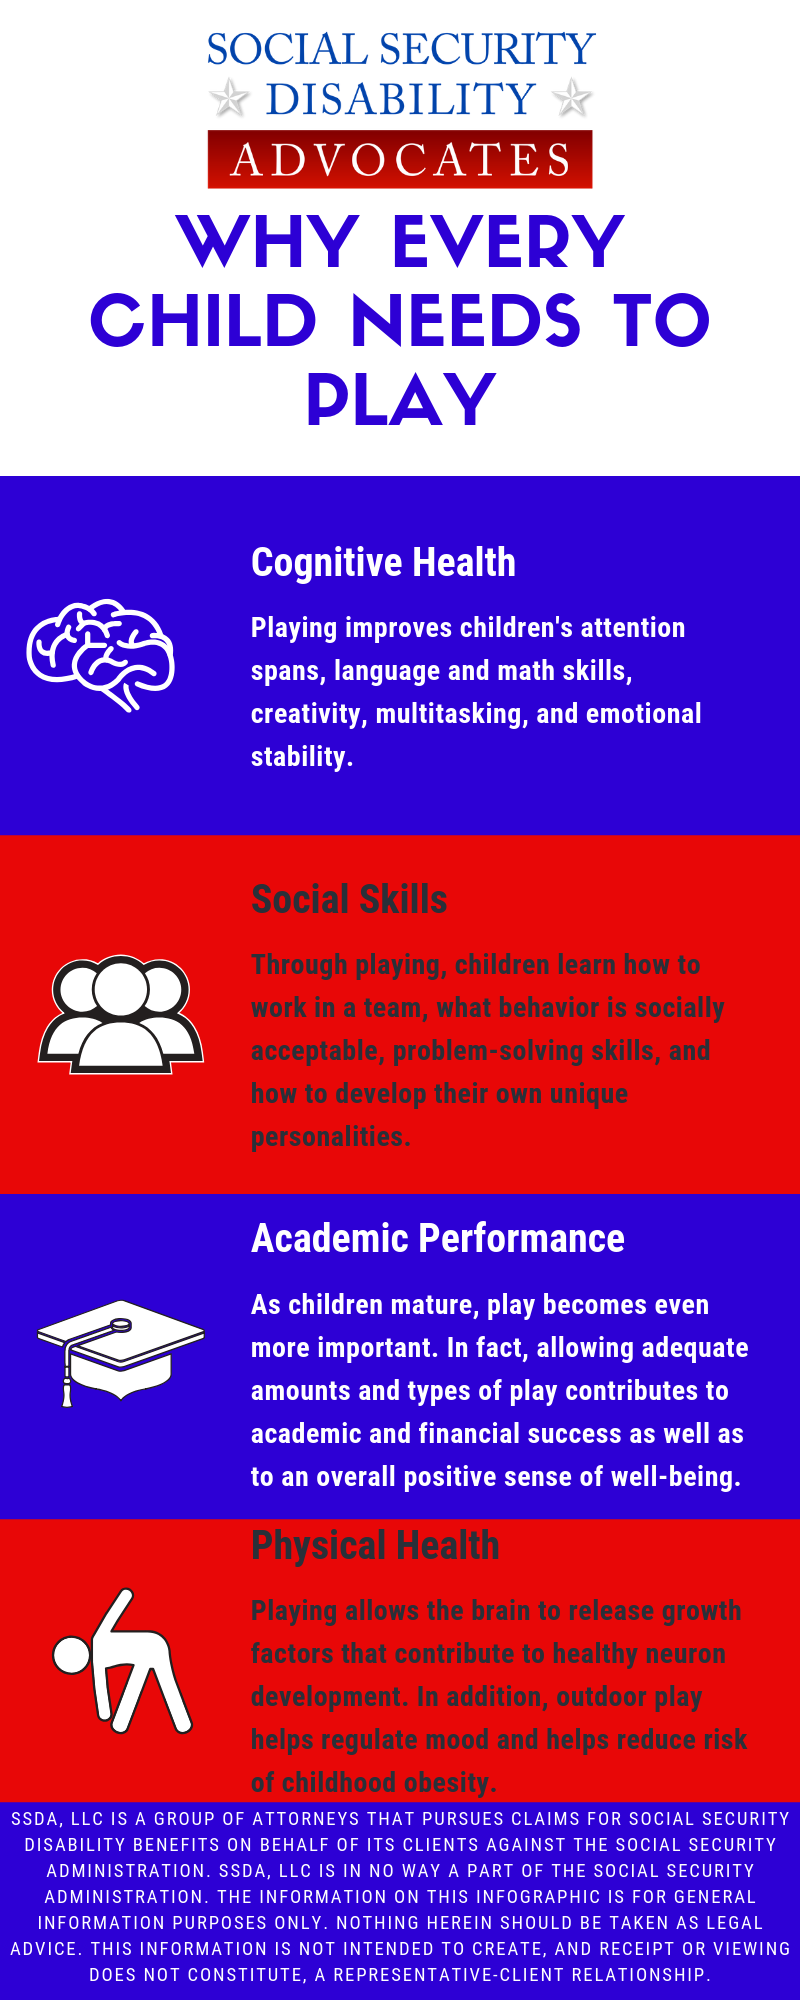 Why every child needs to play infographic